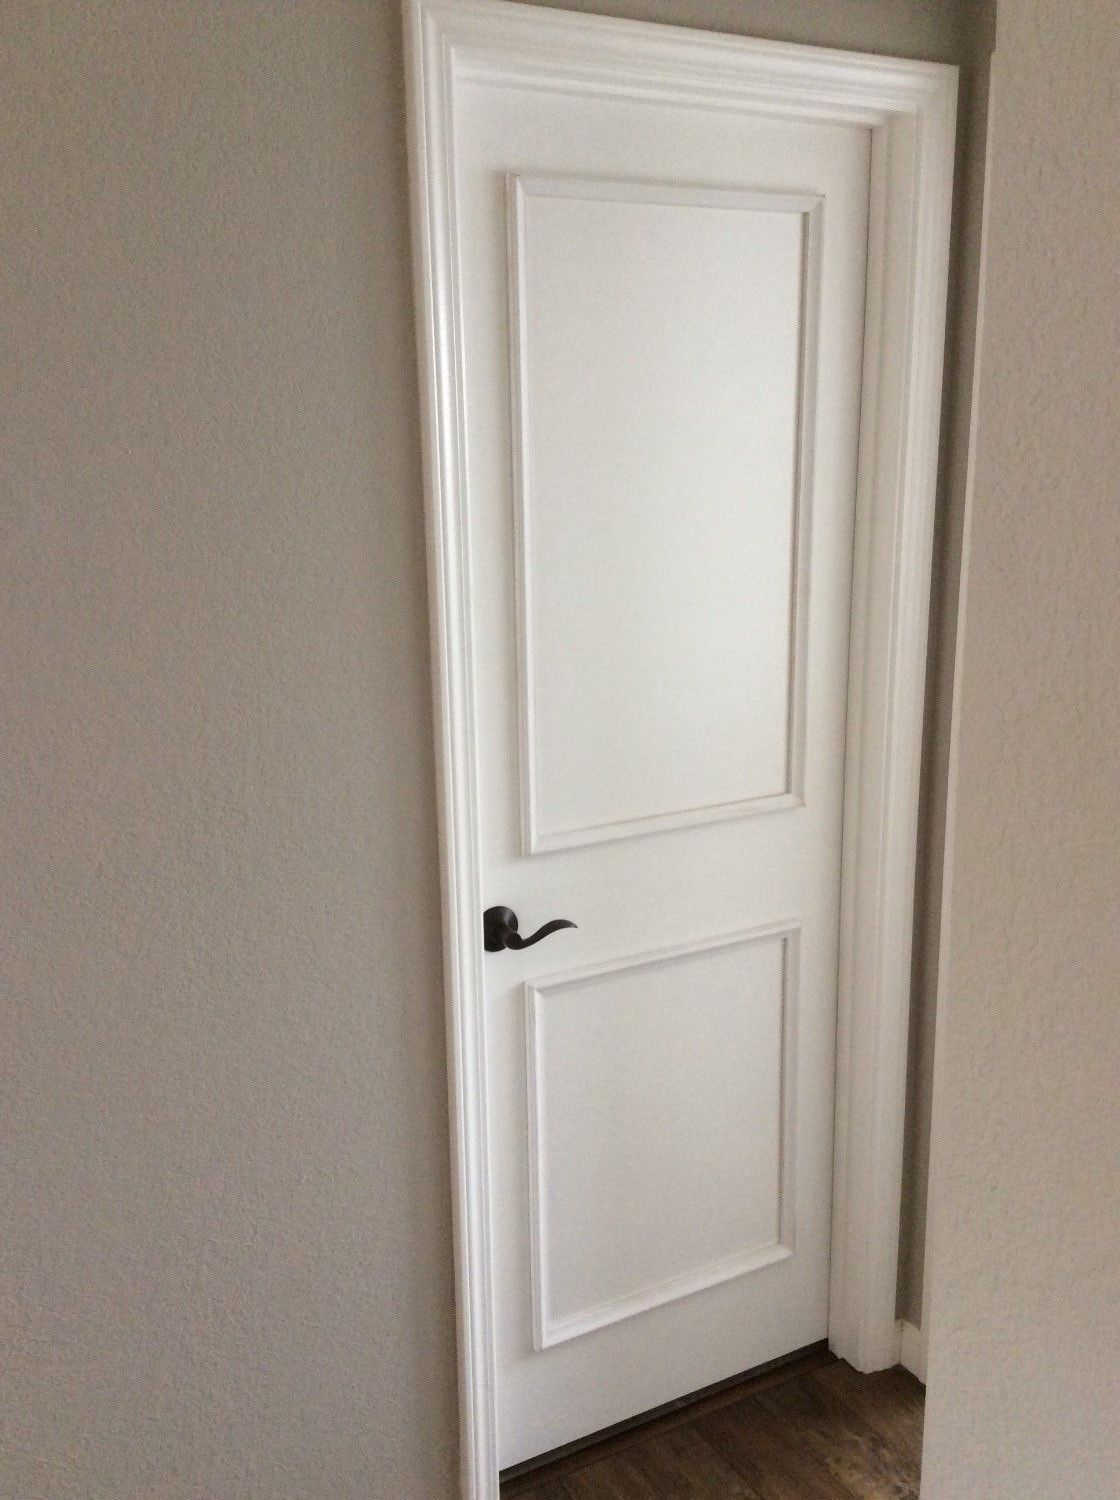 30+ Sophisticated Home Door Designs Ideas That Are